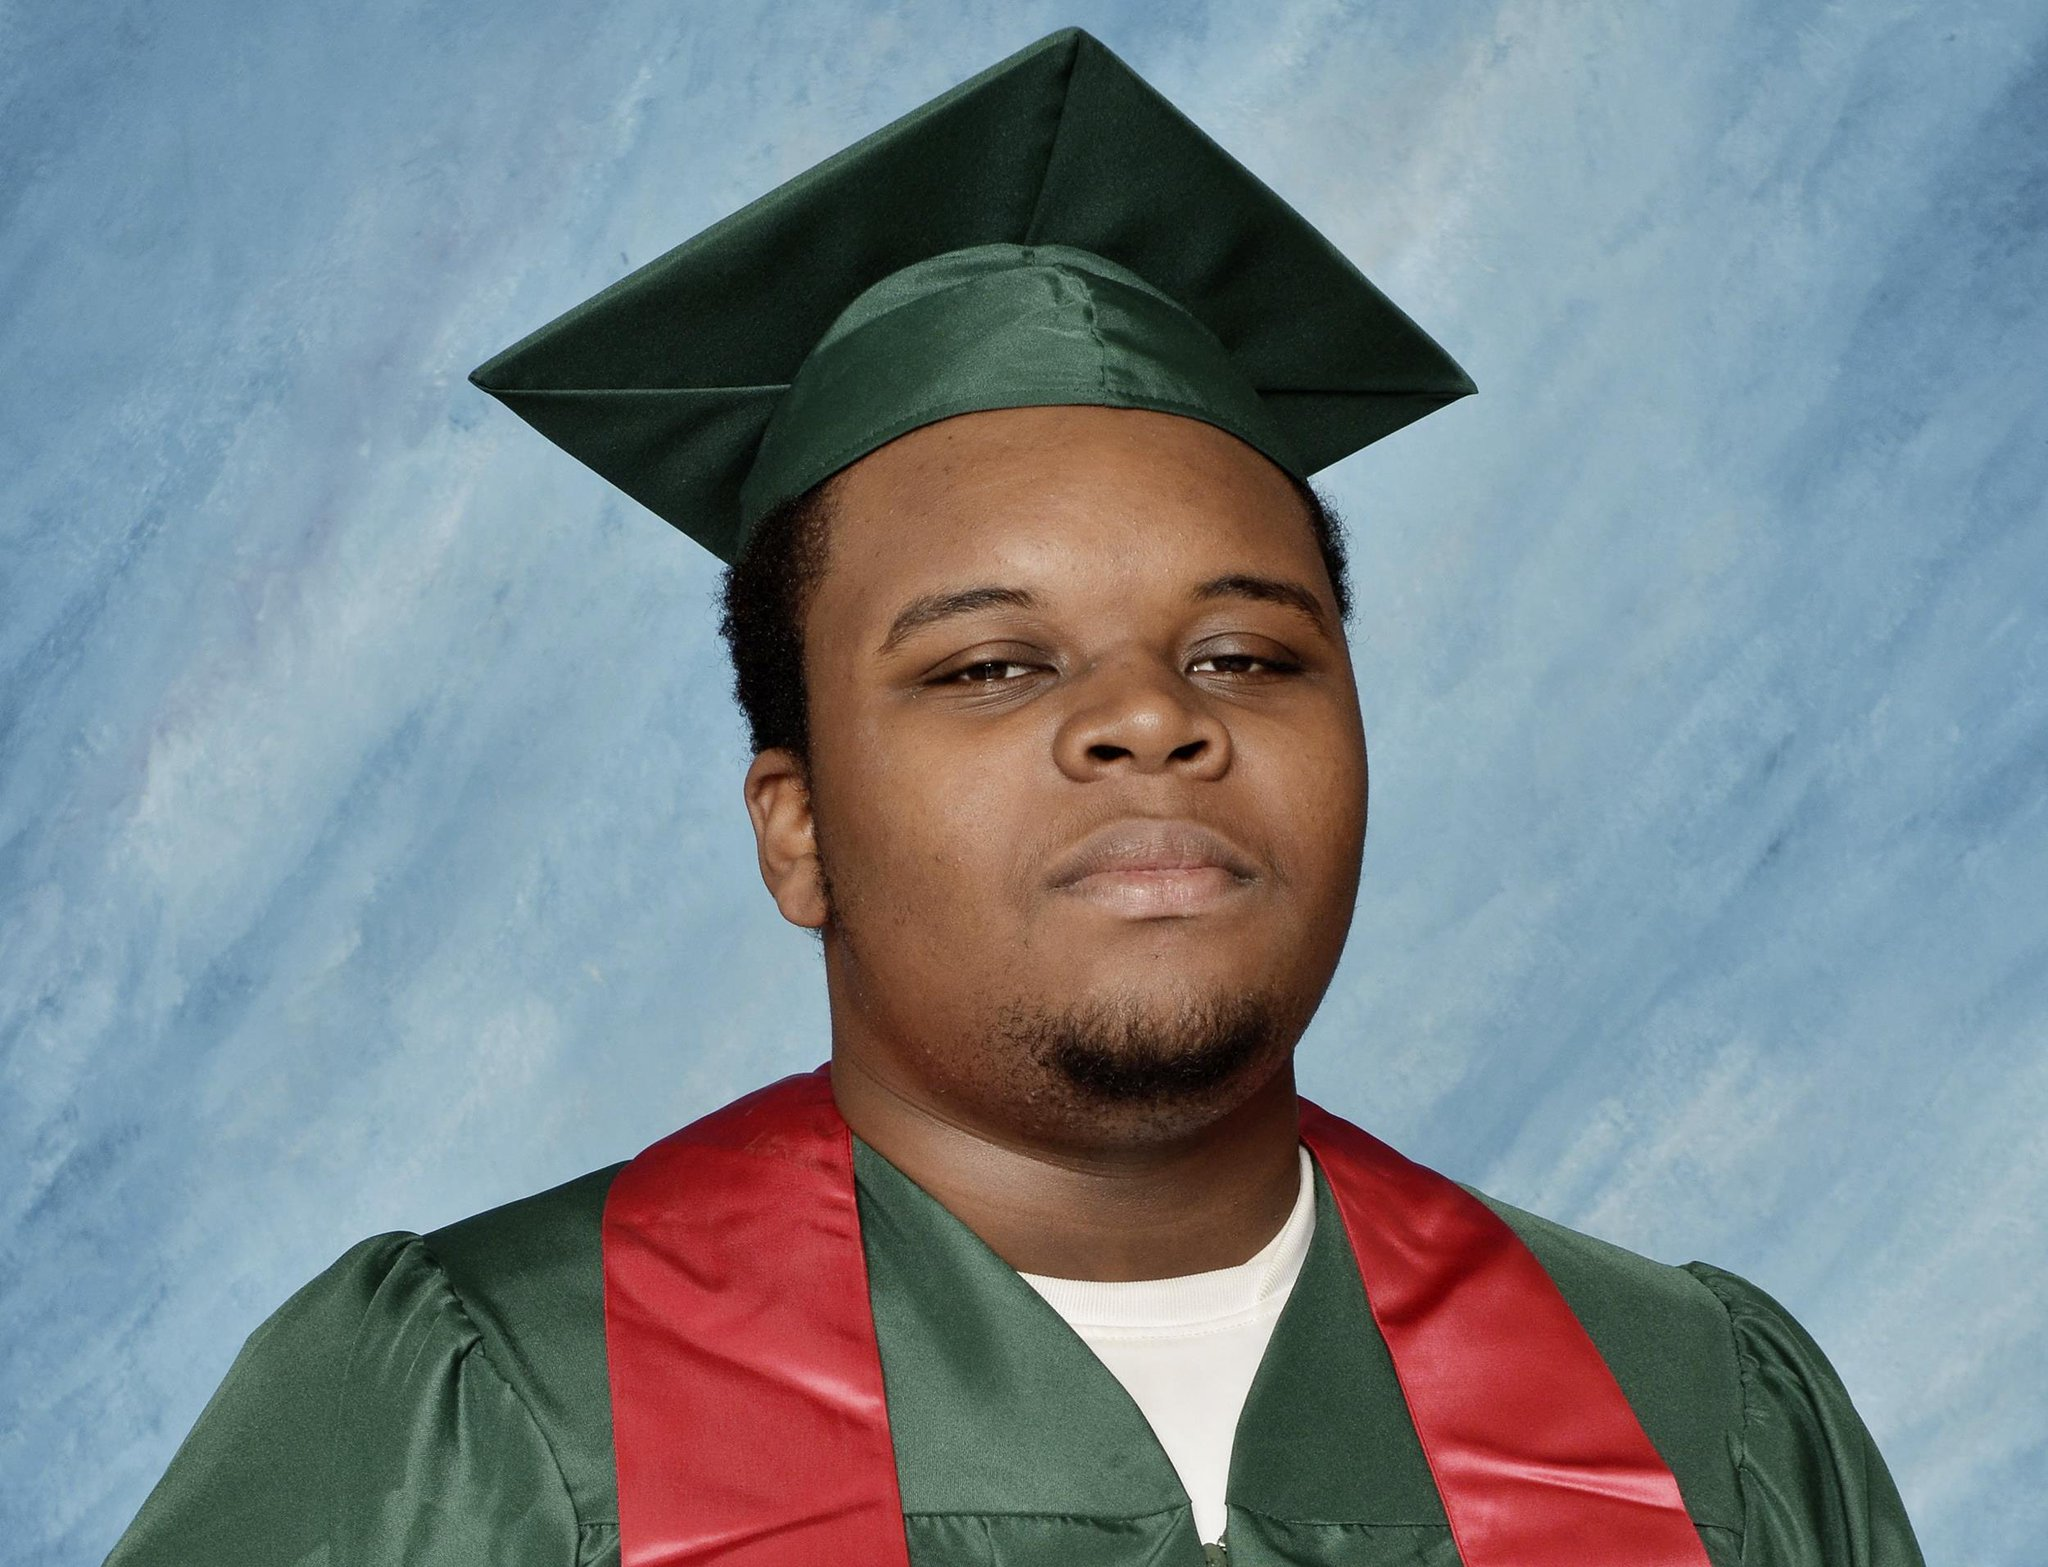 RIP #MikeBrown  (May 20, 1996 - August 9, 2014) https://t.co/JvigEcLEwS